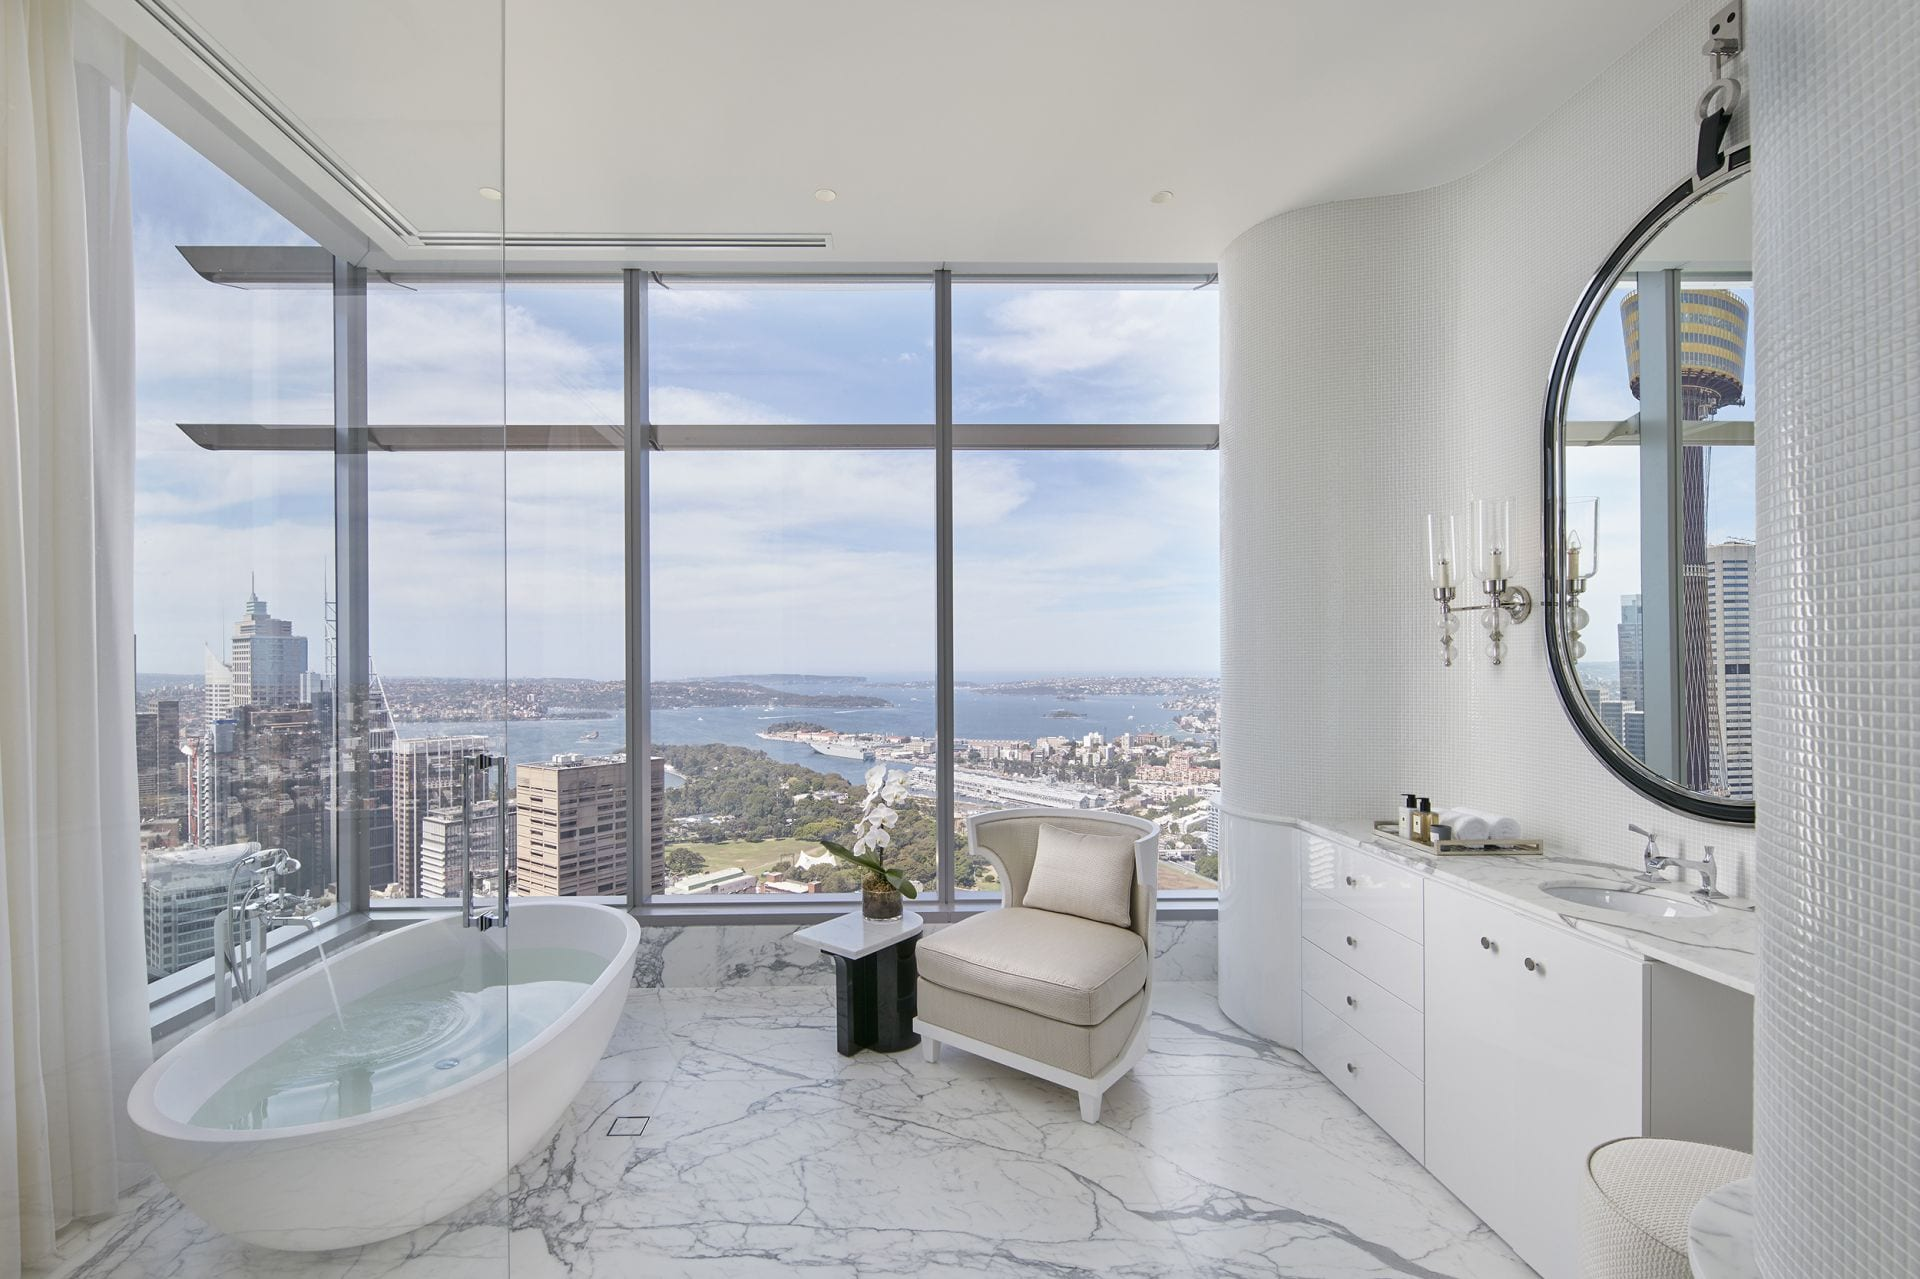 Certainly the best penthouse ever offered in Australia, if not the world.